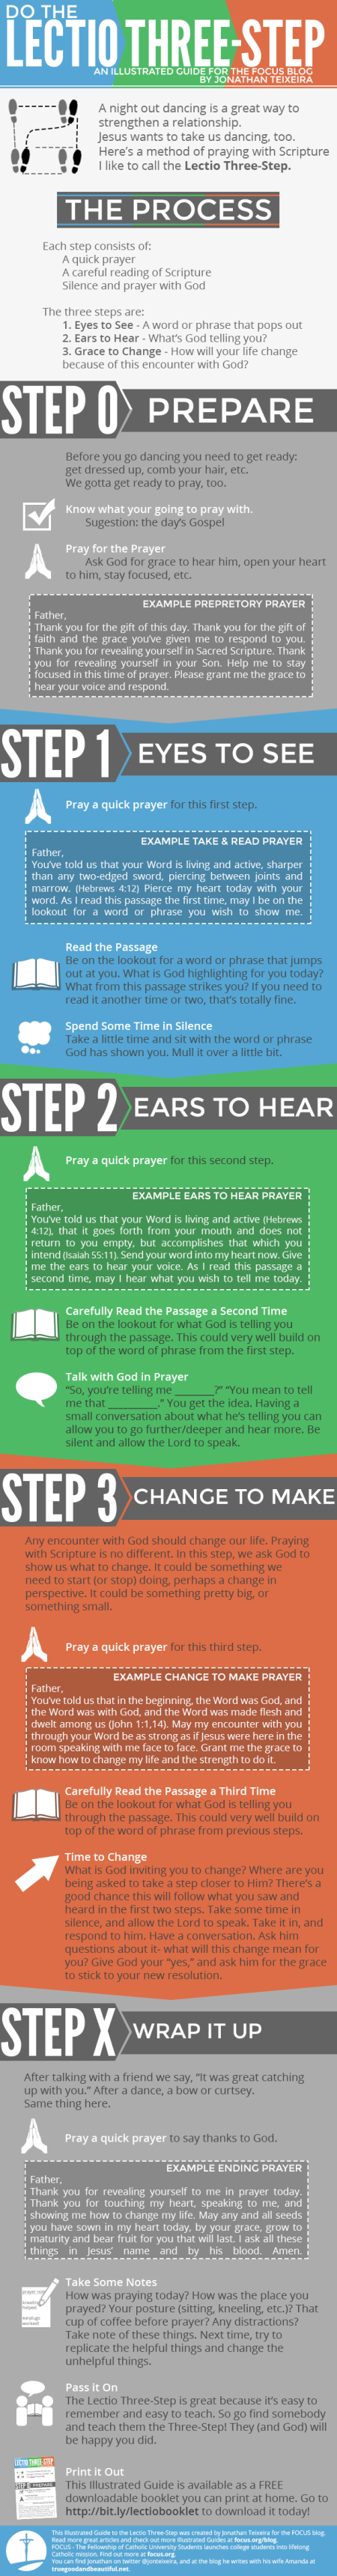 lectio-3-step